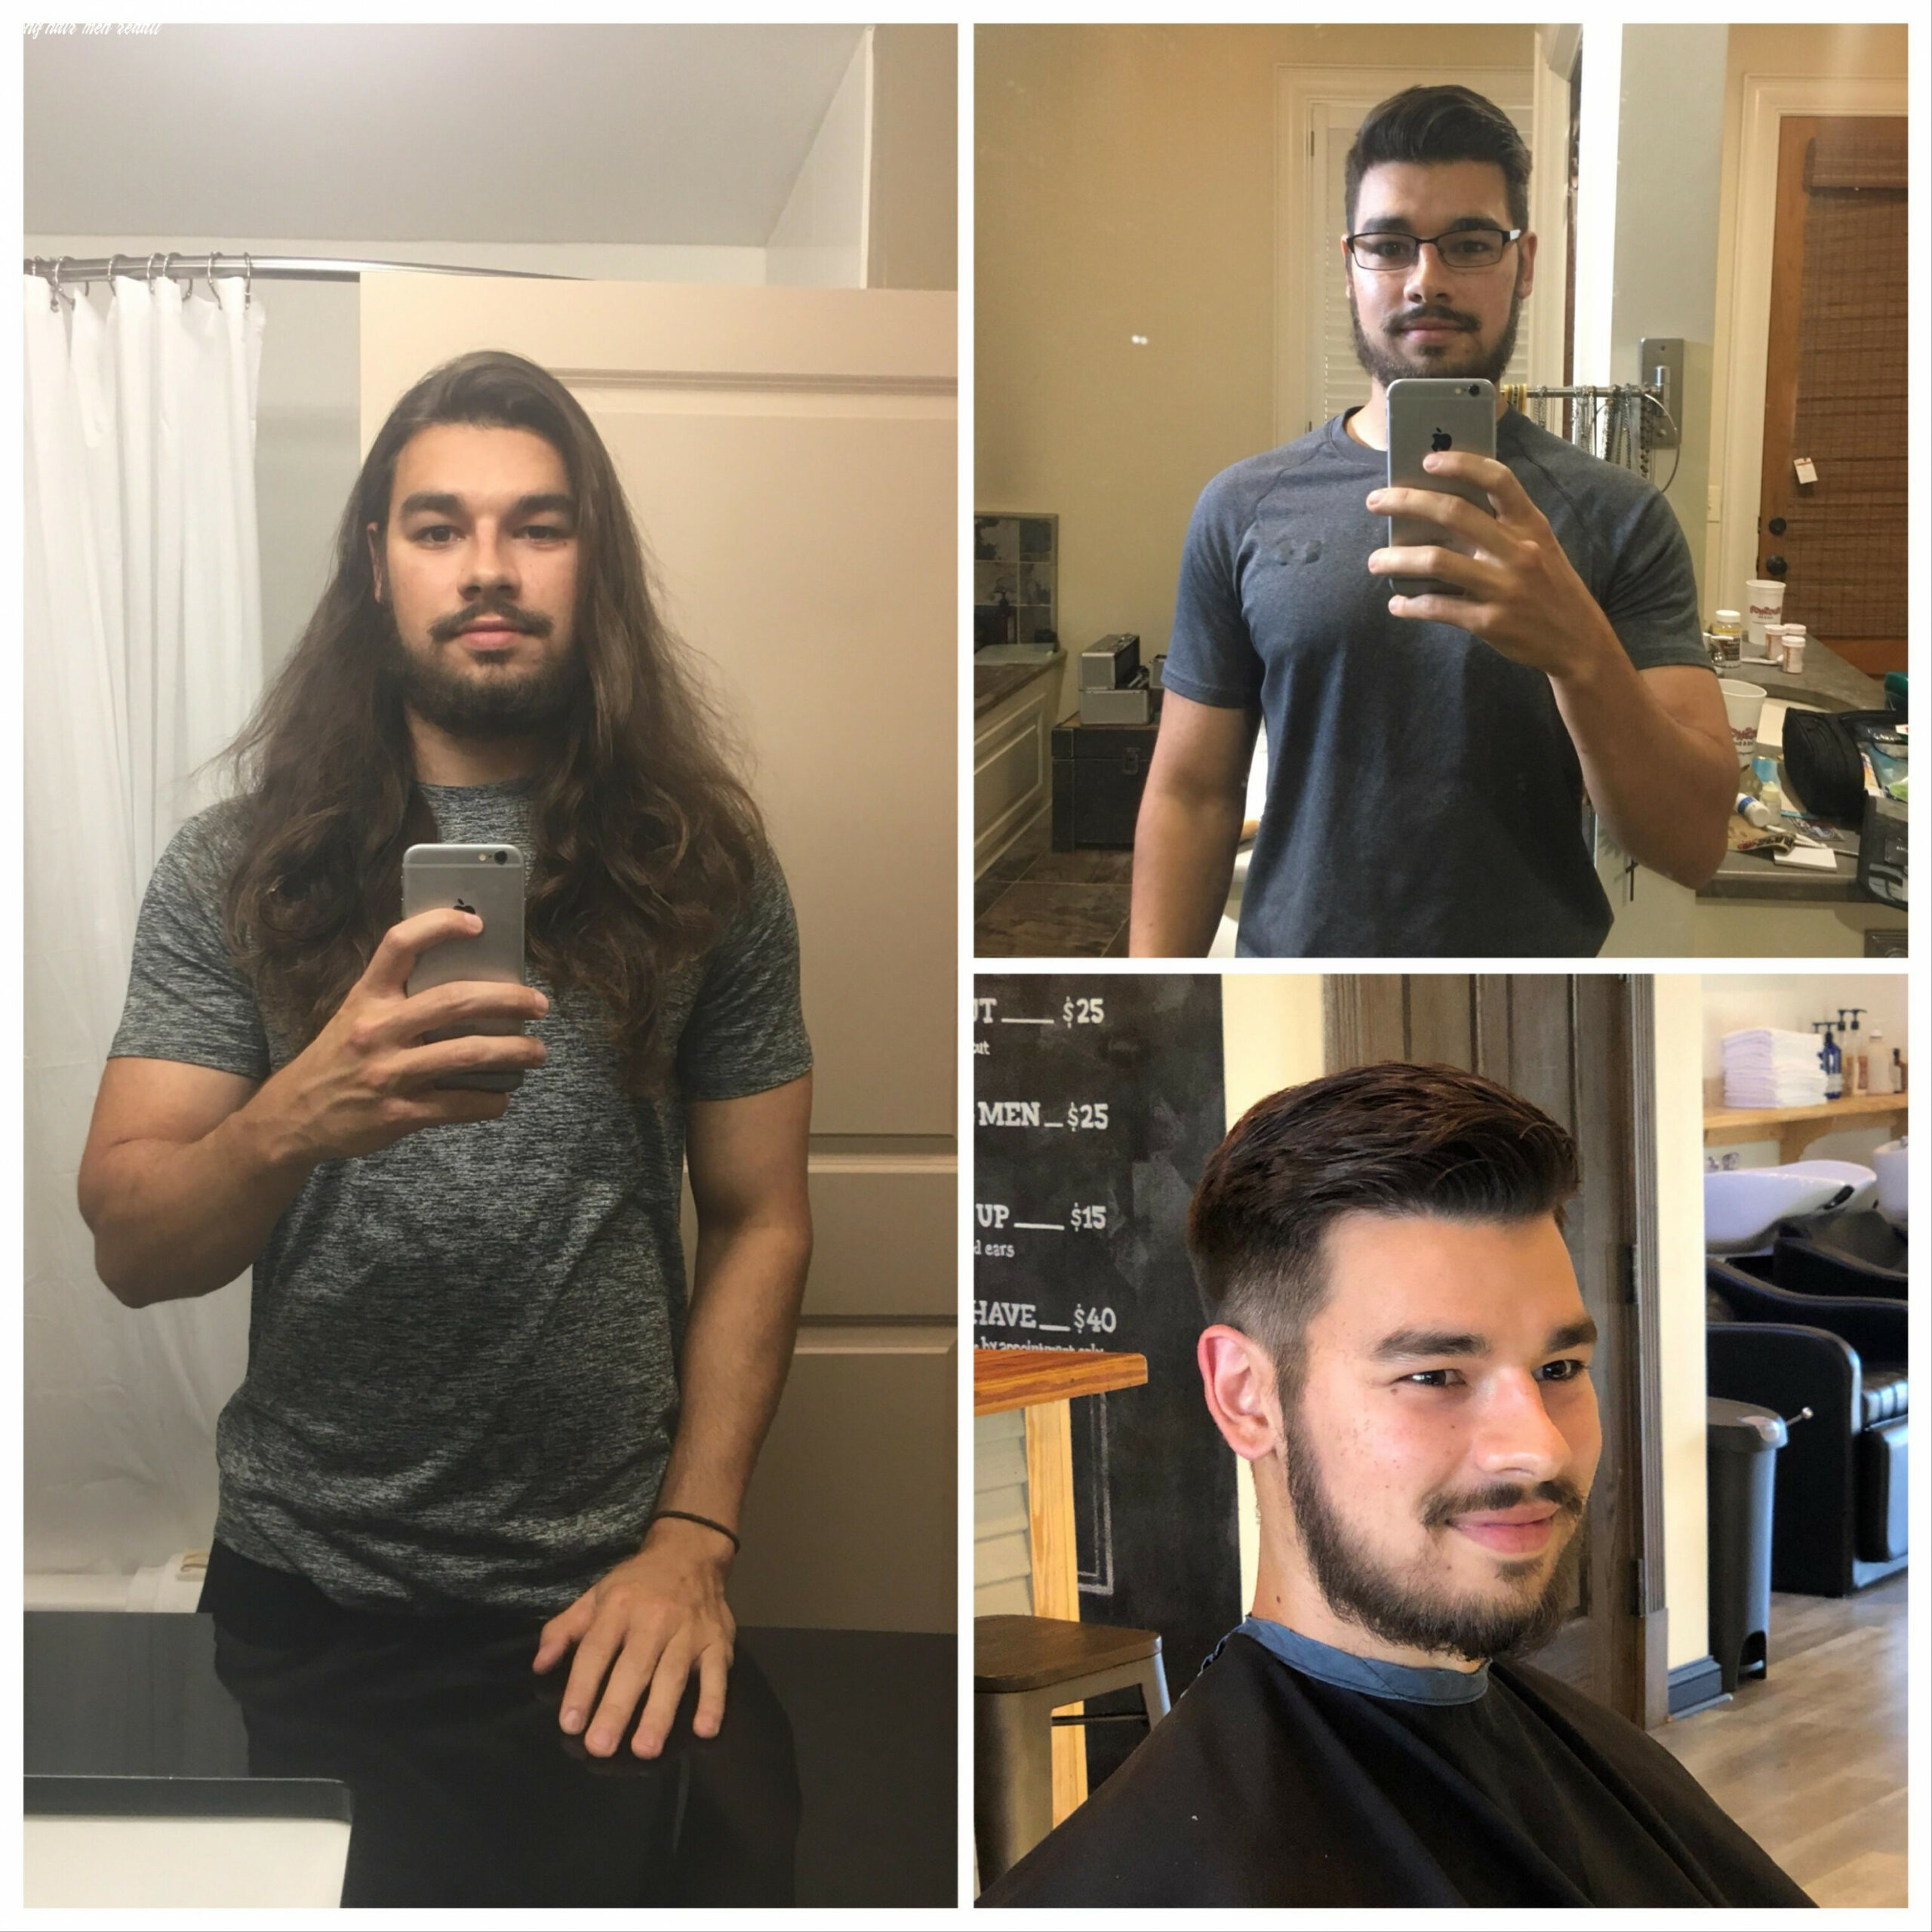 Cut off my flow of 8 and a half years r/malehairadvice said i